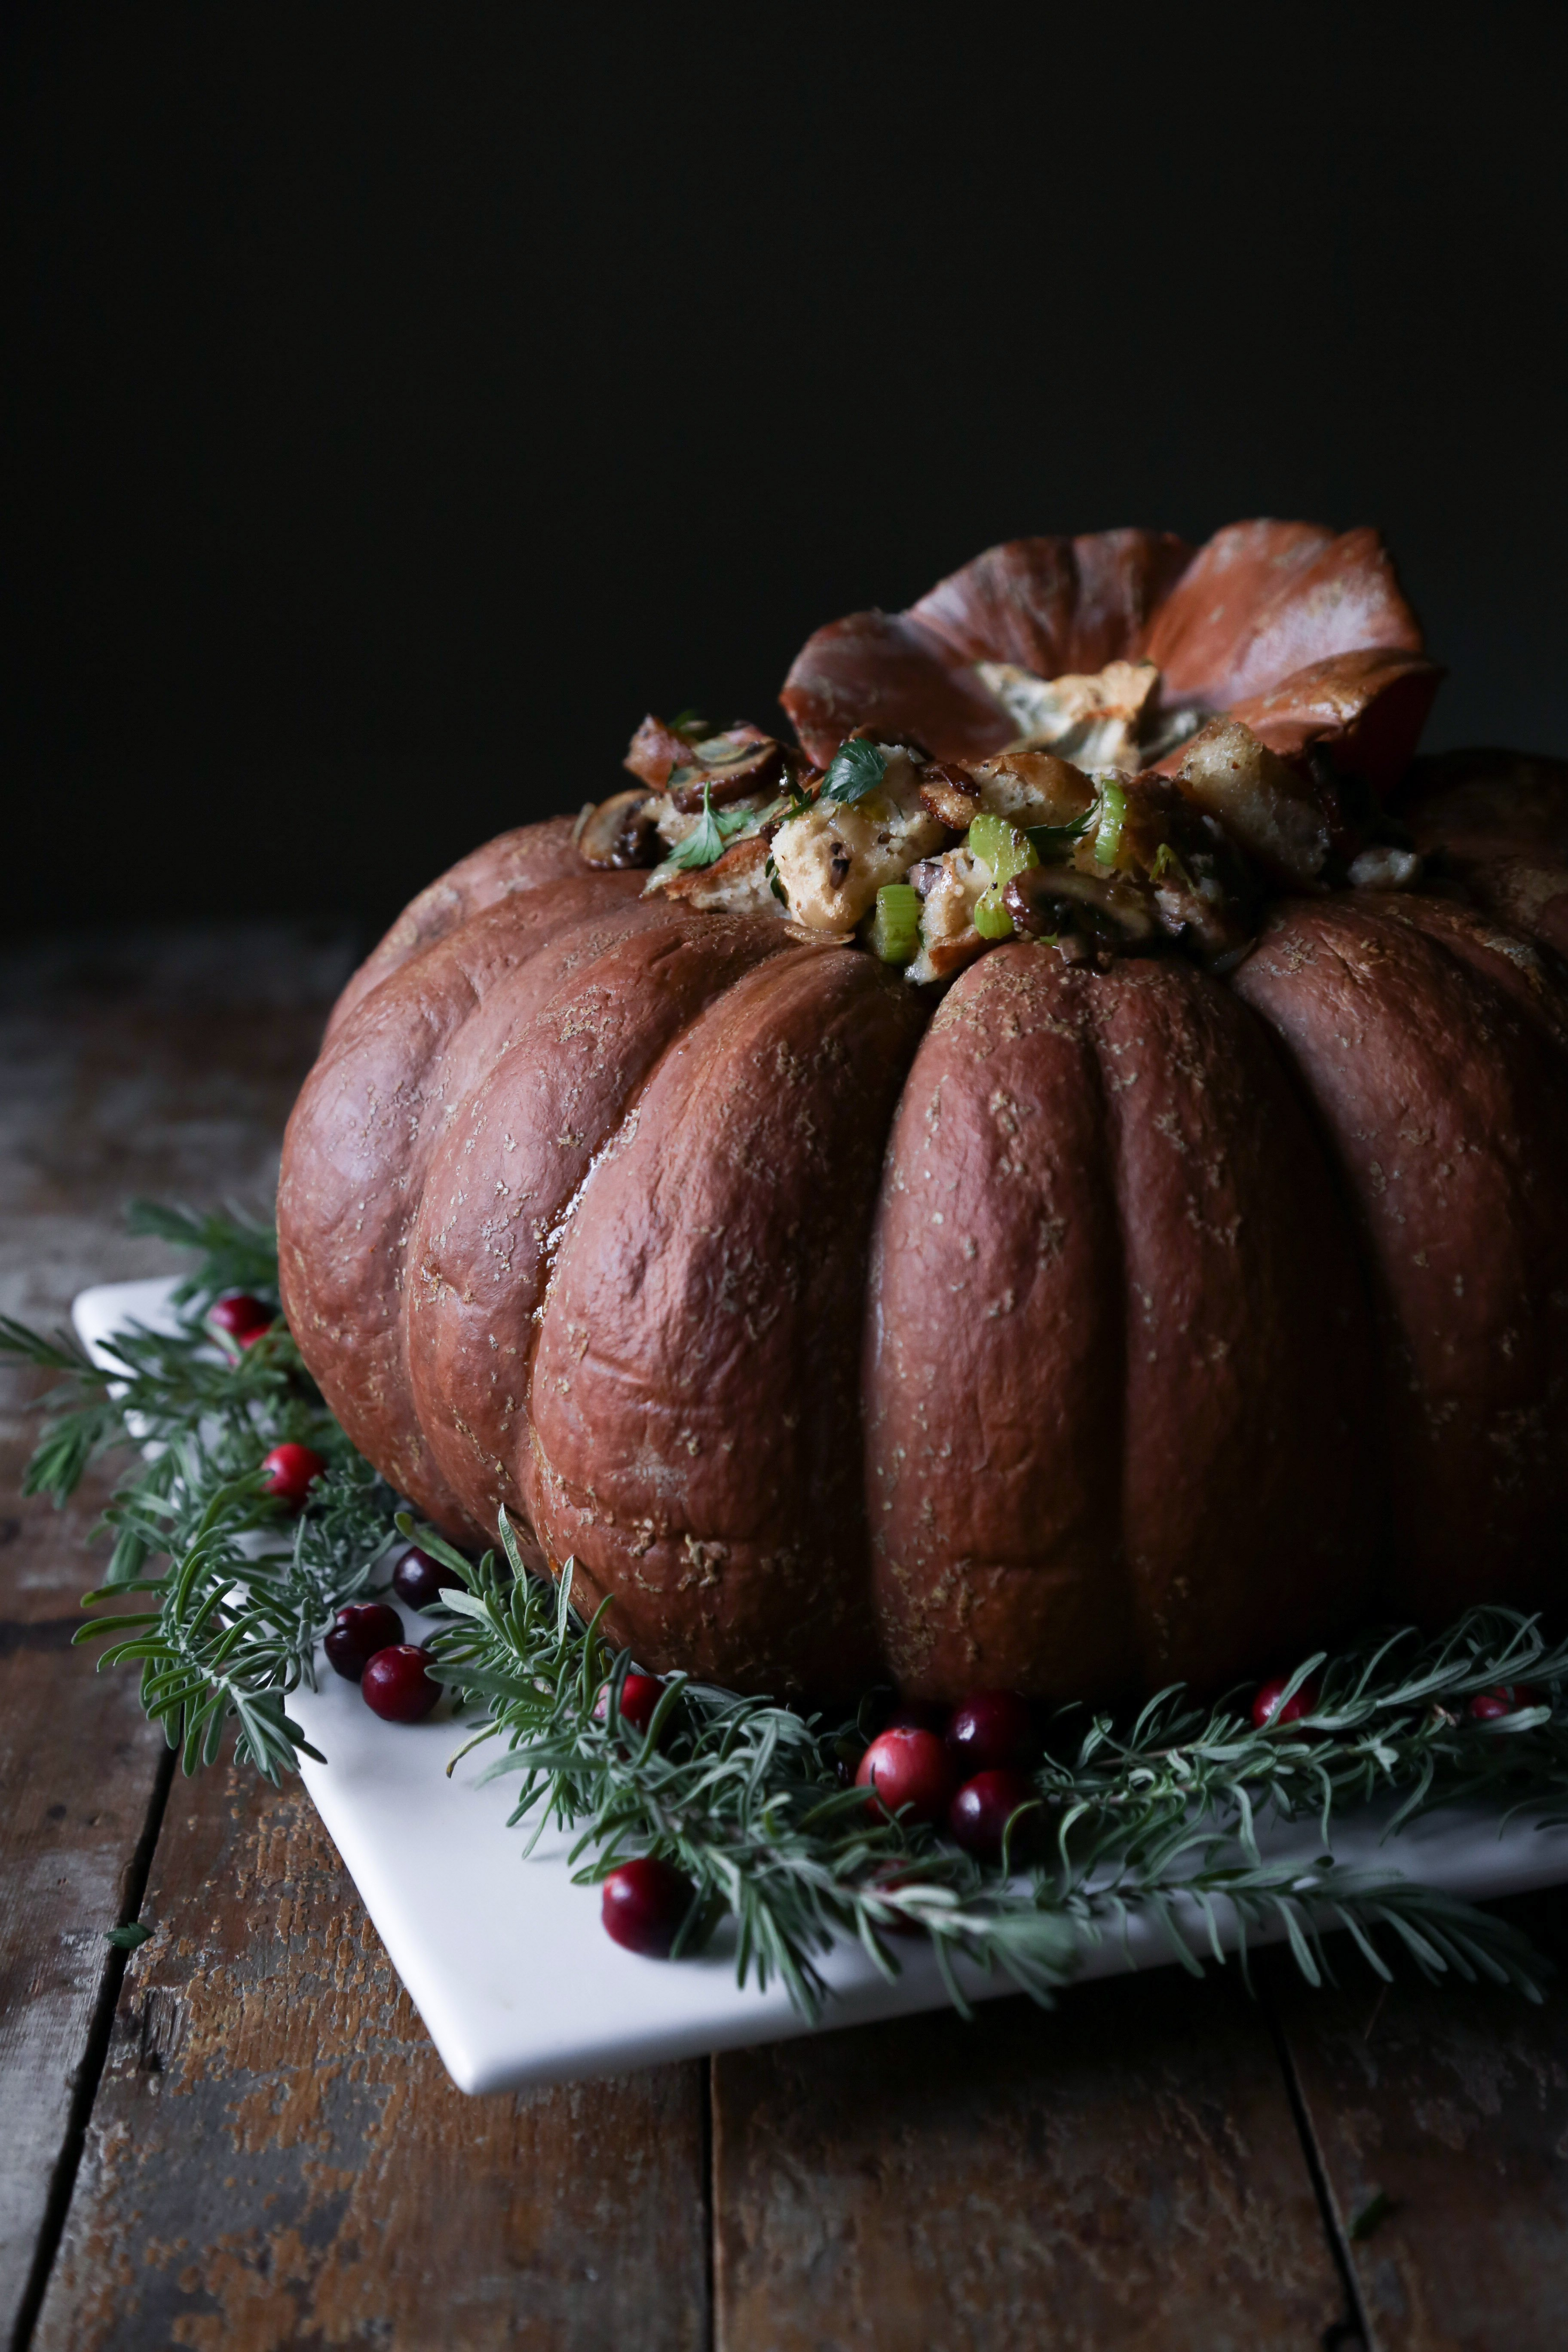 Baked Pumpkin Filled with Sourdough Stuffing   Vegetarian & vegan friendly. Can be easily adapted to be gluten and dairy free.